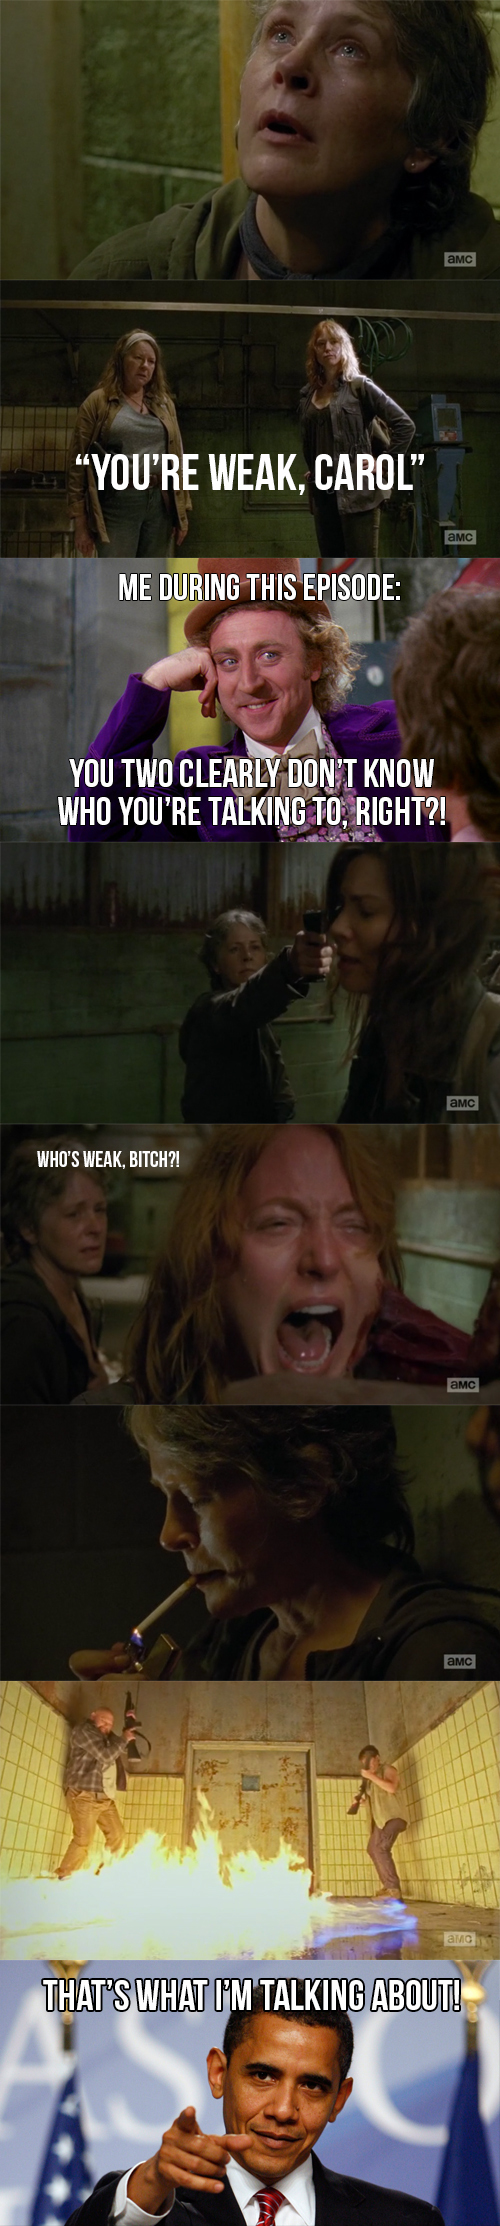 "HOLY CRAP! What an episode! That was literally my face during the whole thing, just calmly laughing while those people thought Carol was a fool, when she was actually playing with all them. She's definitely the best character of this show! Seriously, what a dense episode!   PS: It's been a while since I last gave ""WOW"" to a Walking Dead episode, but this one deserved so much!"